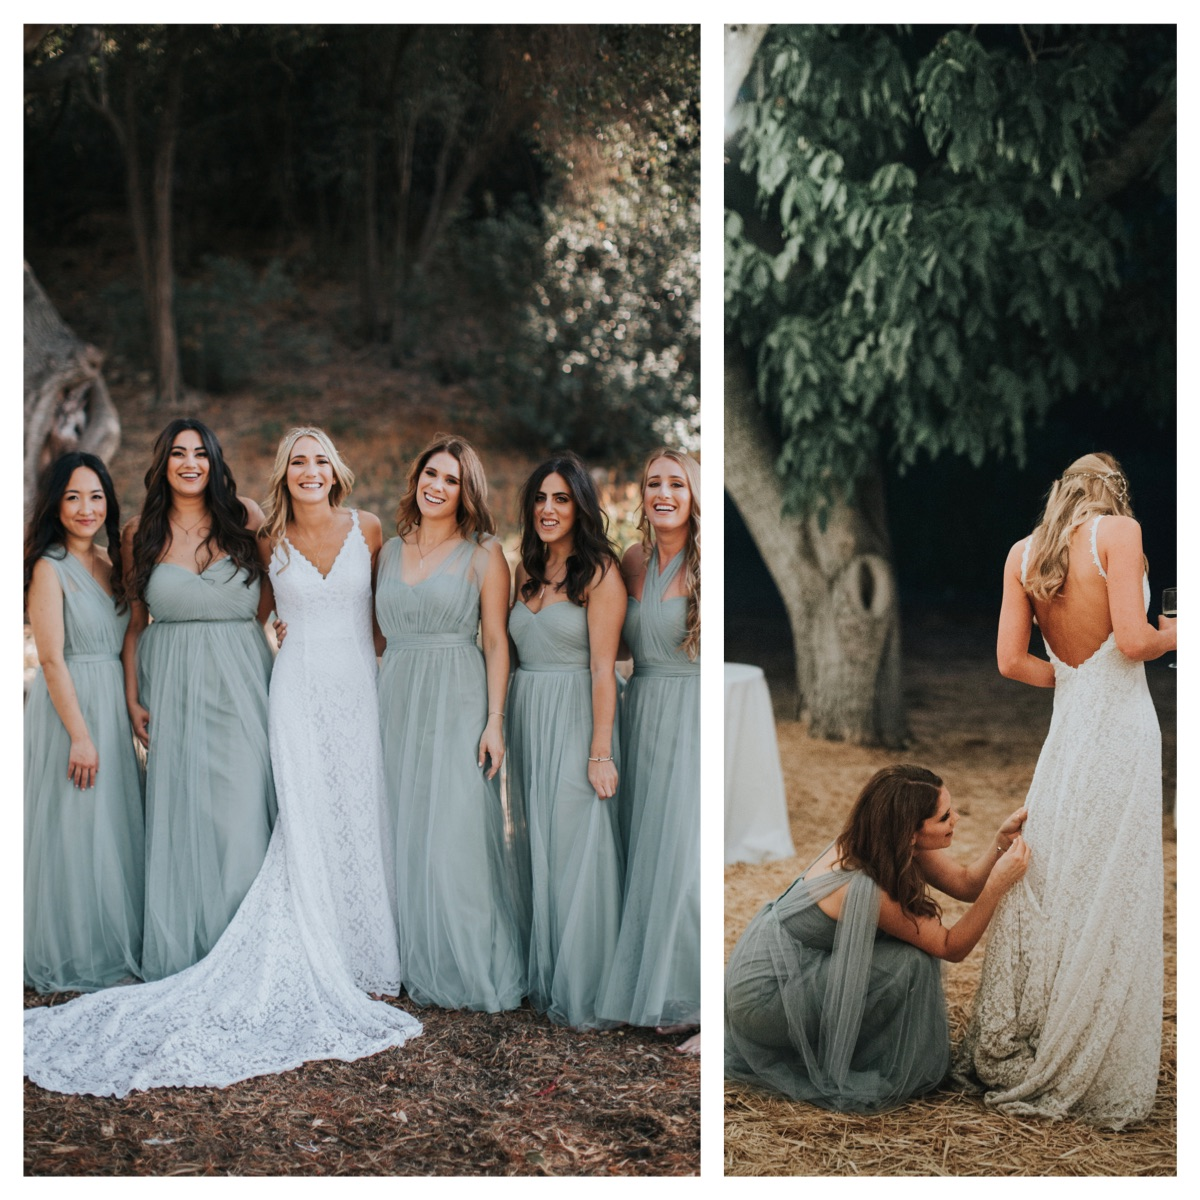 California-wedding-laidback-bride-with-her-bridesmaids-them-wearing-seafoam-and-her-in-a-lace-backless-bohemian-gown